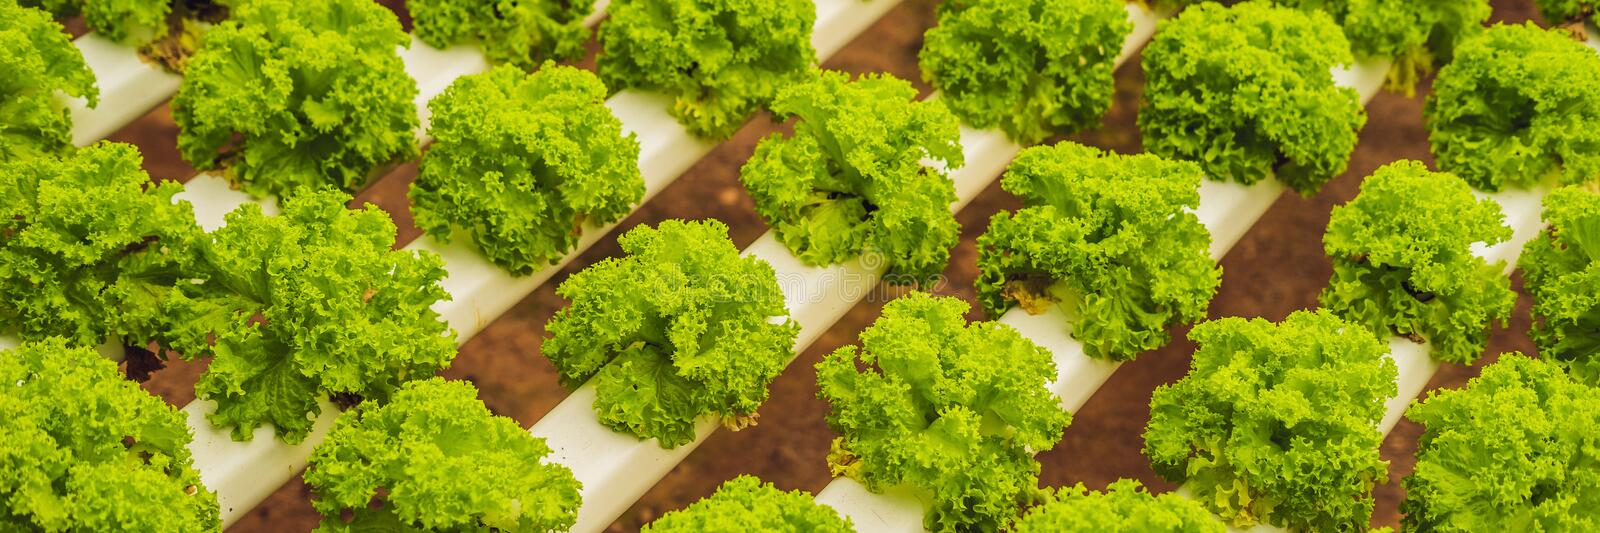 Hydroponic vegetables salad farm. Hydroponics method of growing plants vegetables salad farm, in water, without soil. Hydroponic l. Ettuces in hydroponic pipe royalty free stock photo